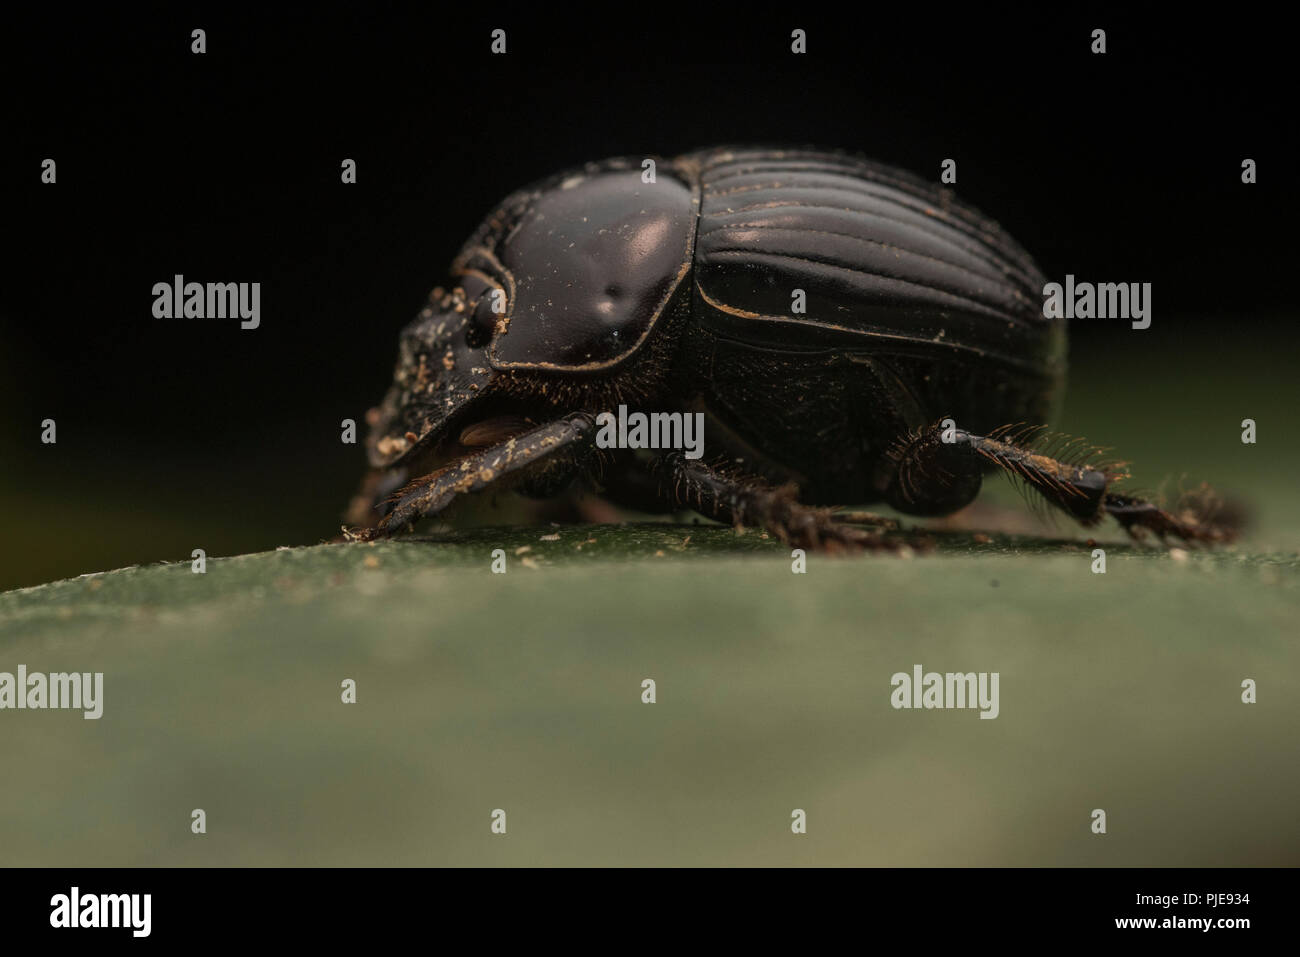 A dung beetle from the Amazon rain forest, photographed in Southern Peru. - Stock Image